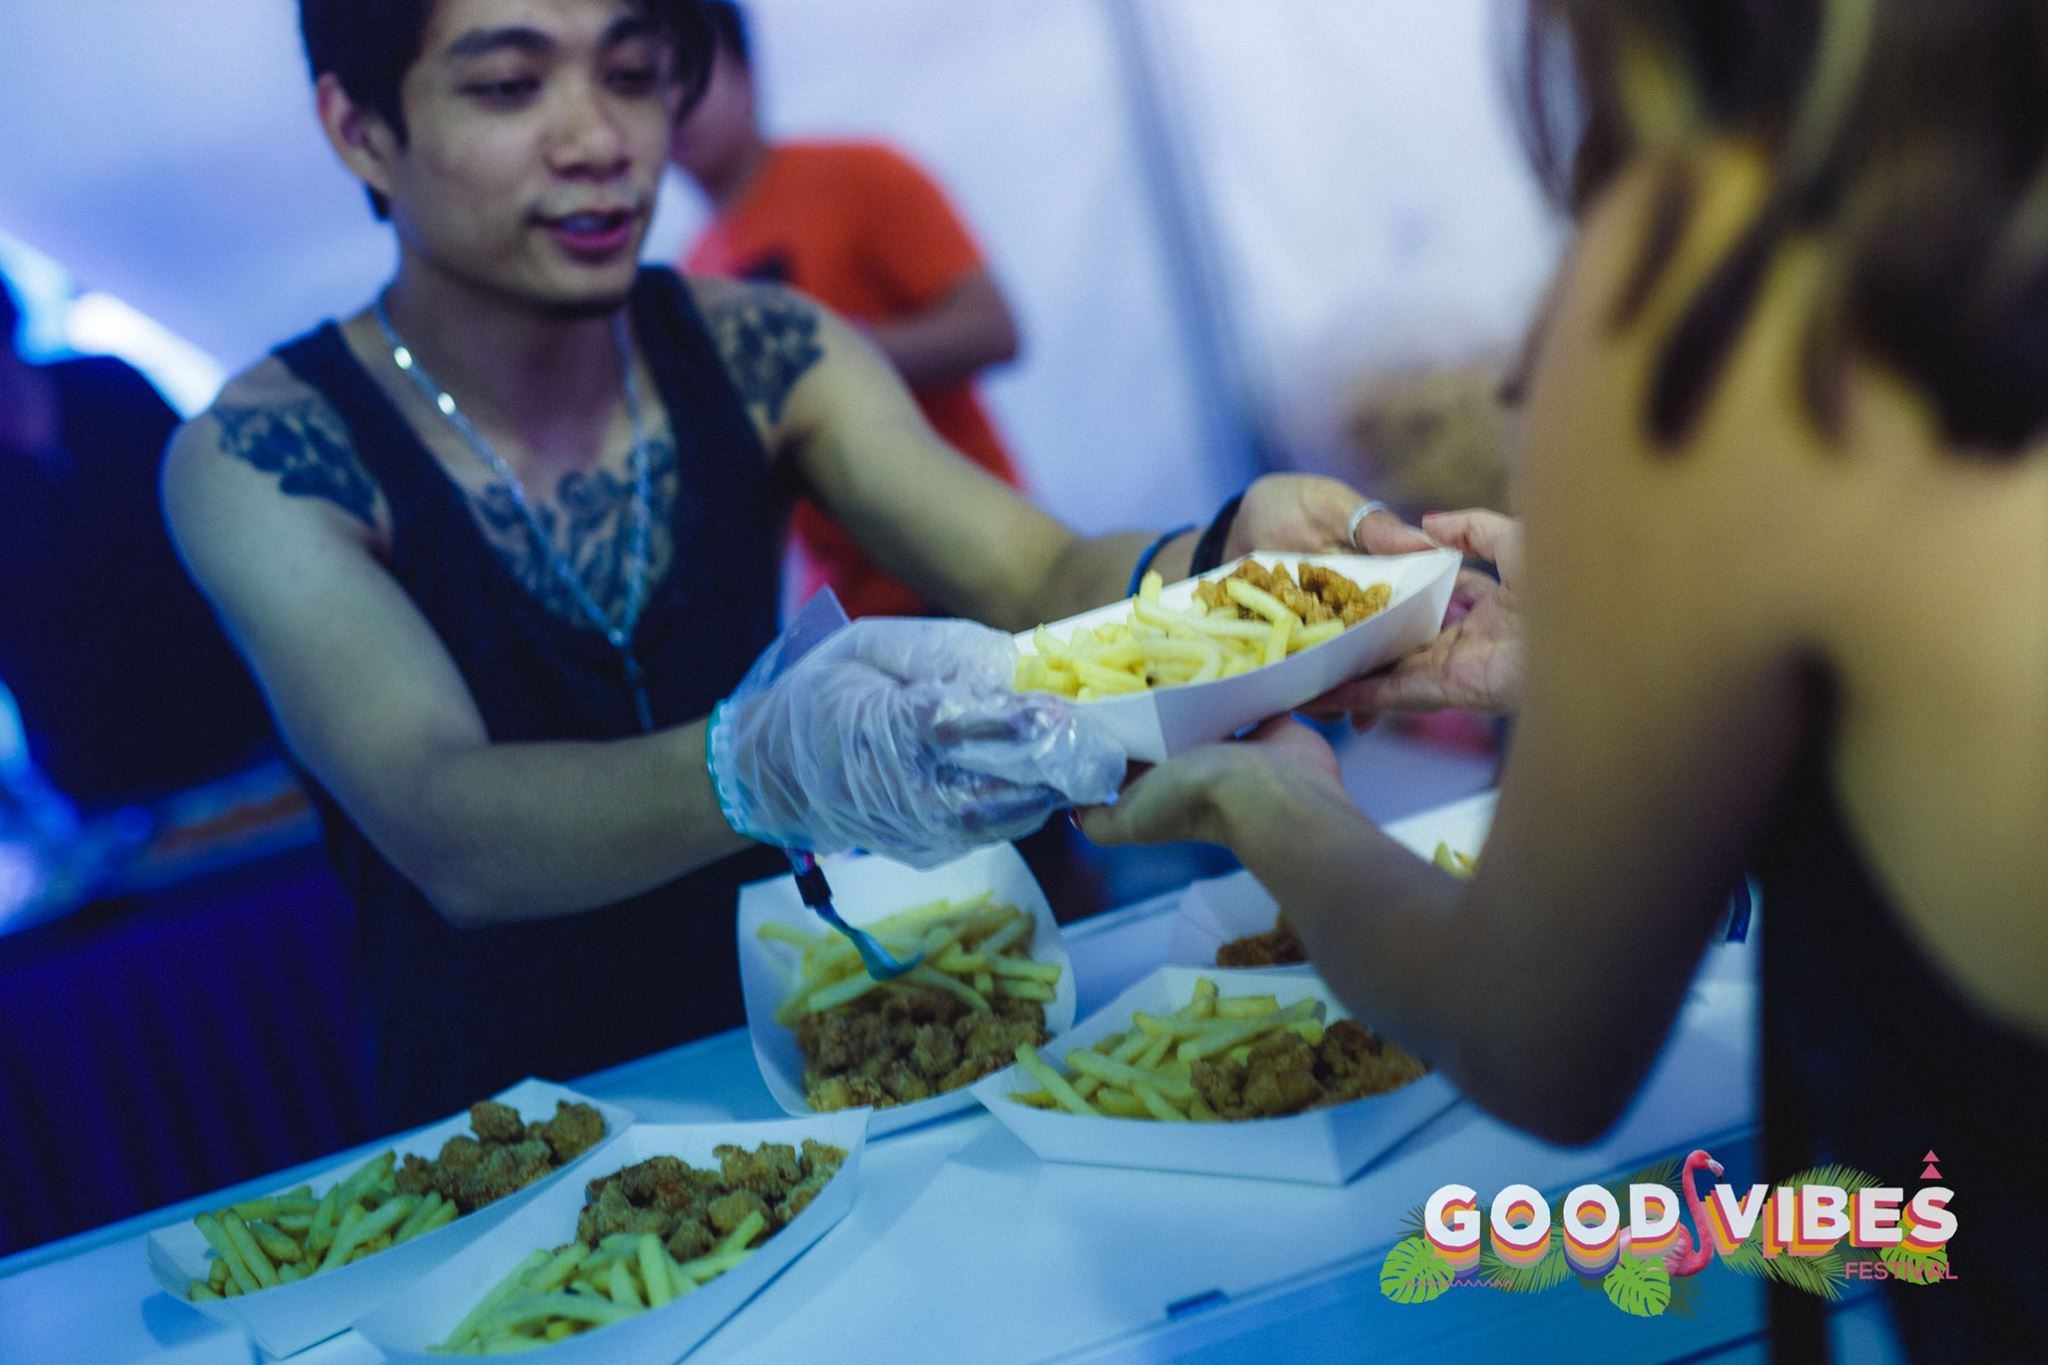 Good food is definitely good vibes.